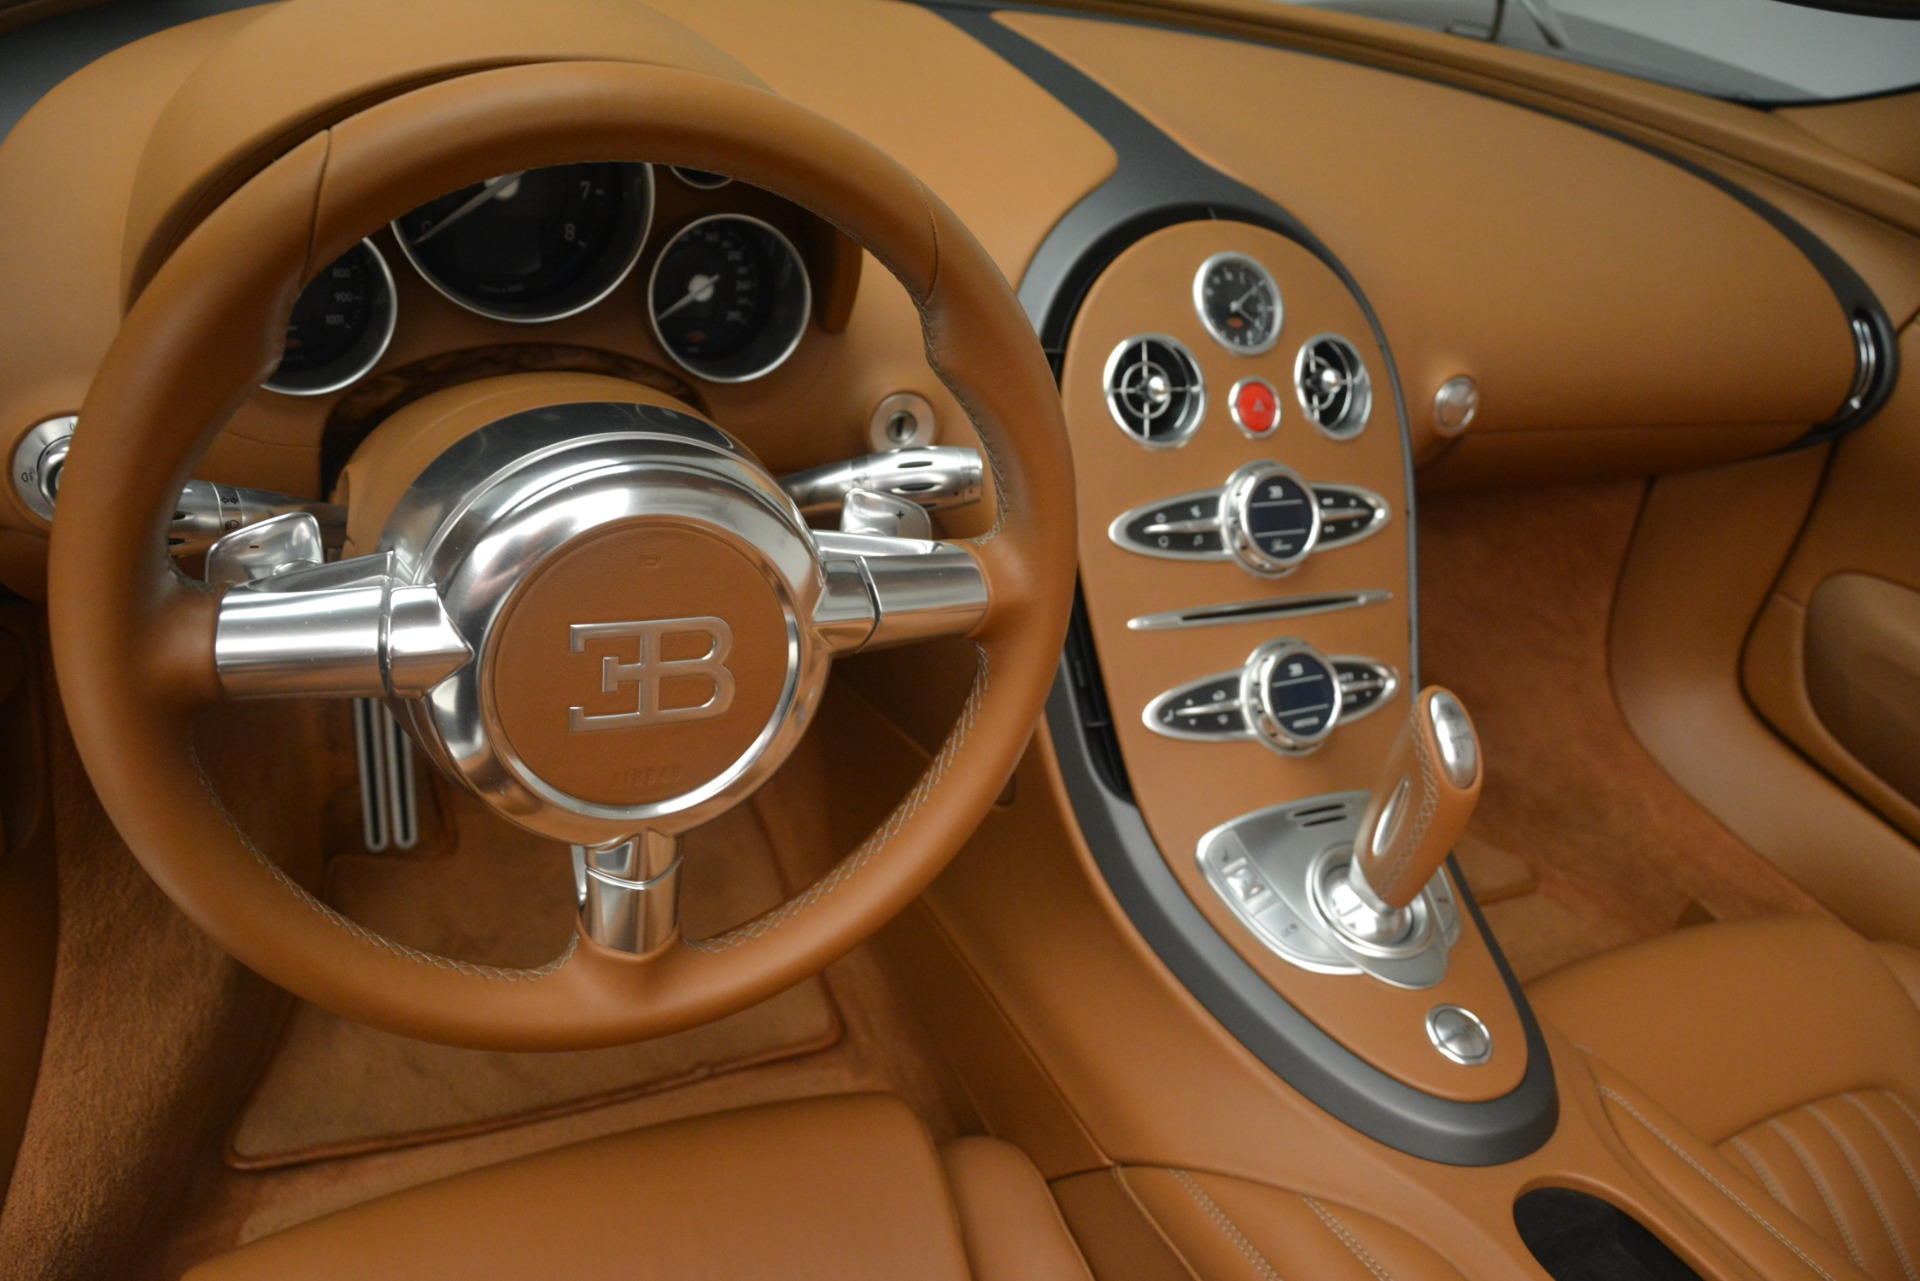 Used 2010 Bugatti Veyron 16.4 Grand Sport For Sale In Westport, CT 3159_p28